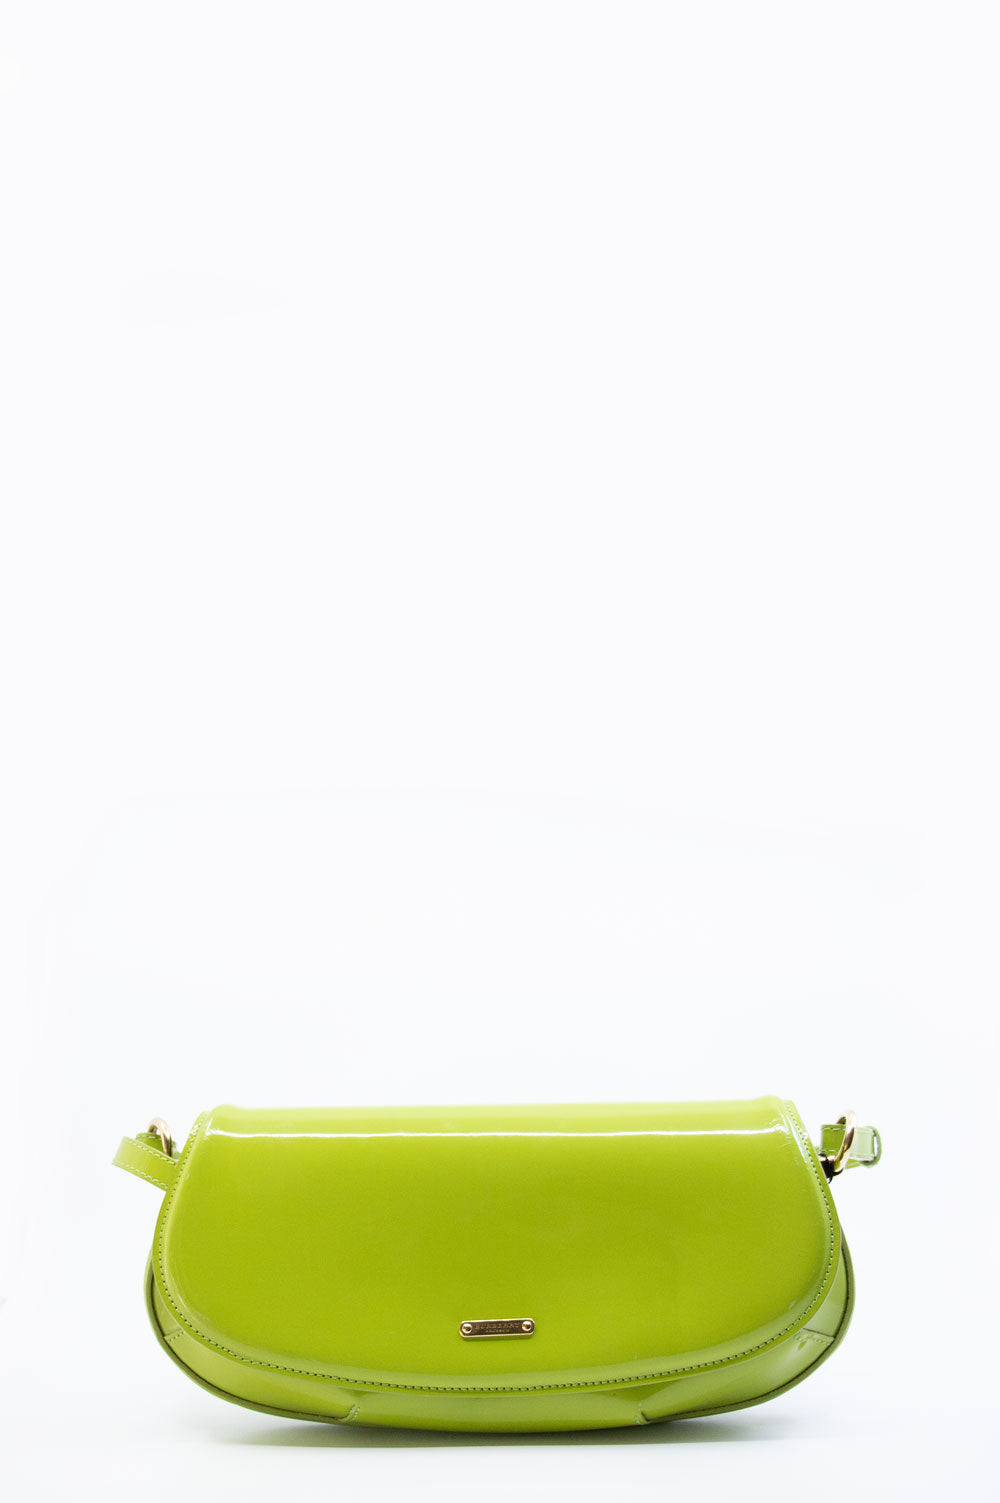 Burberry Prorsum Crossbody Lilford Patent Leather Bag in grün.